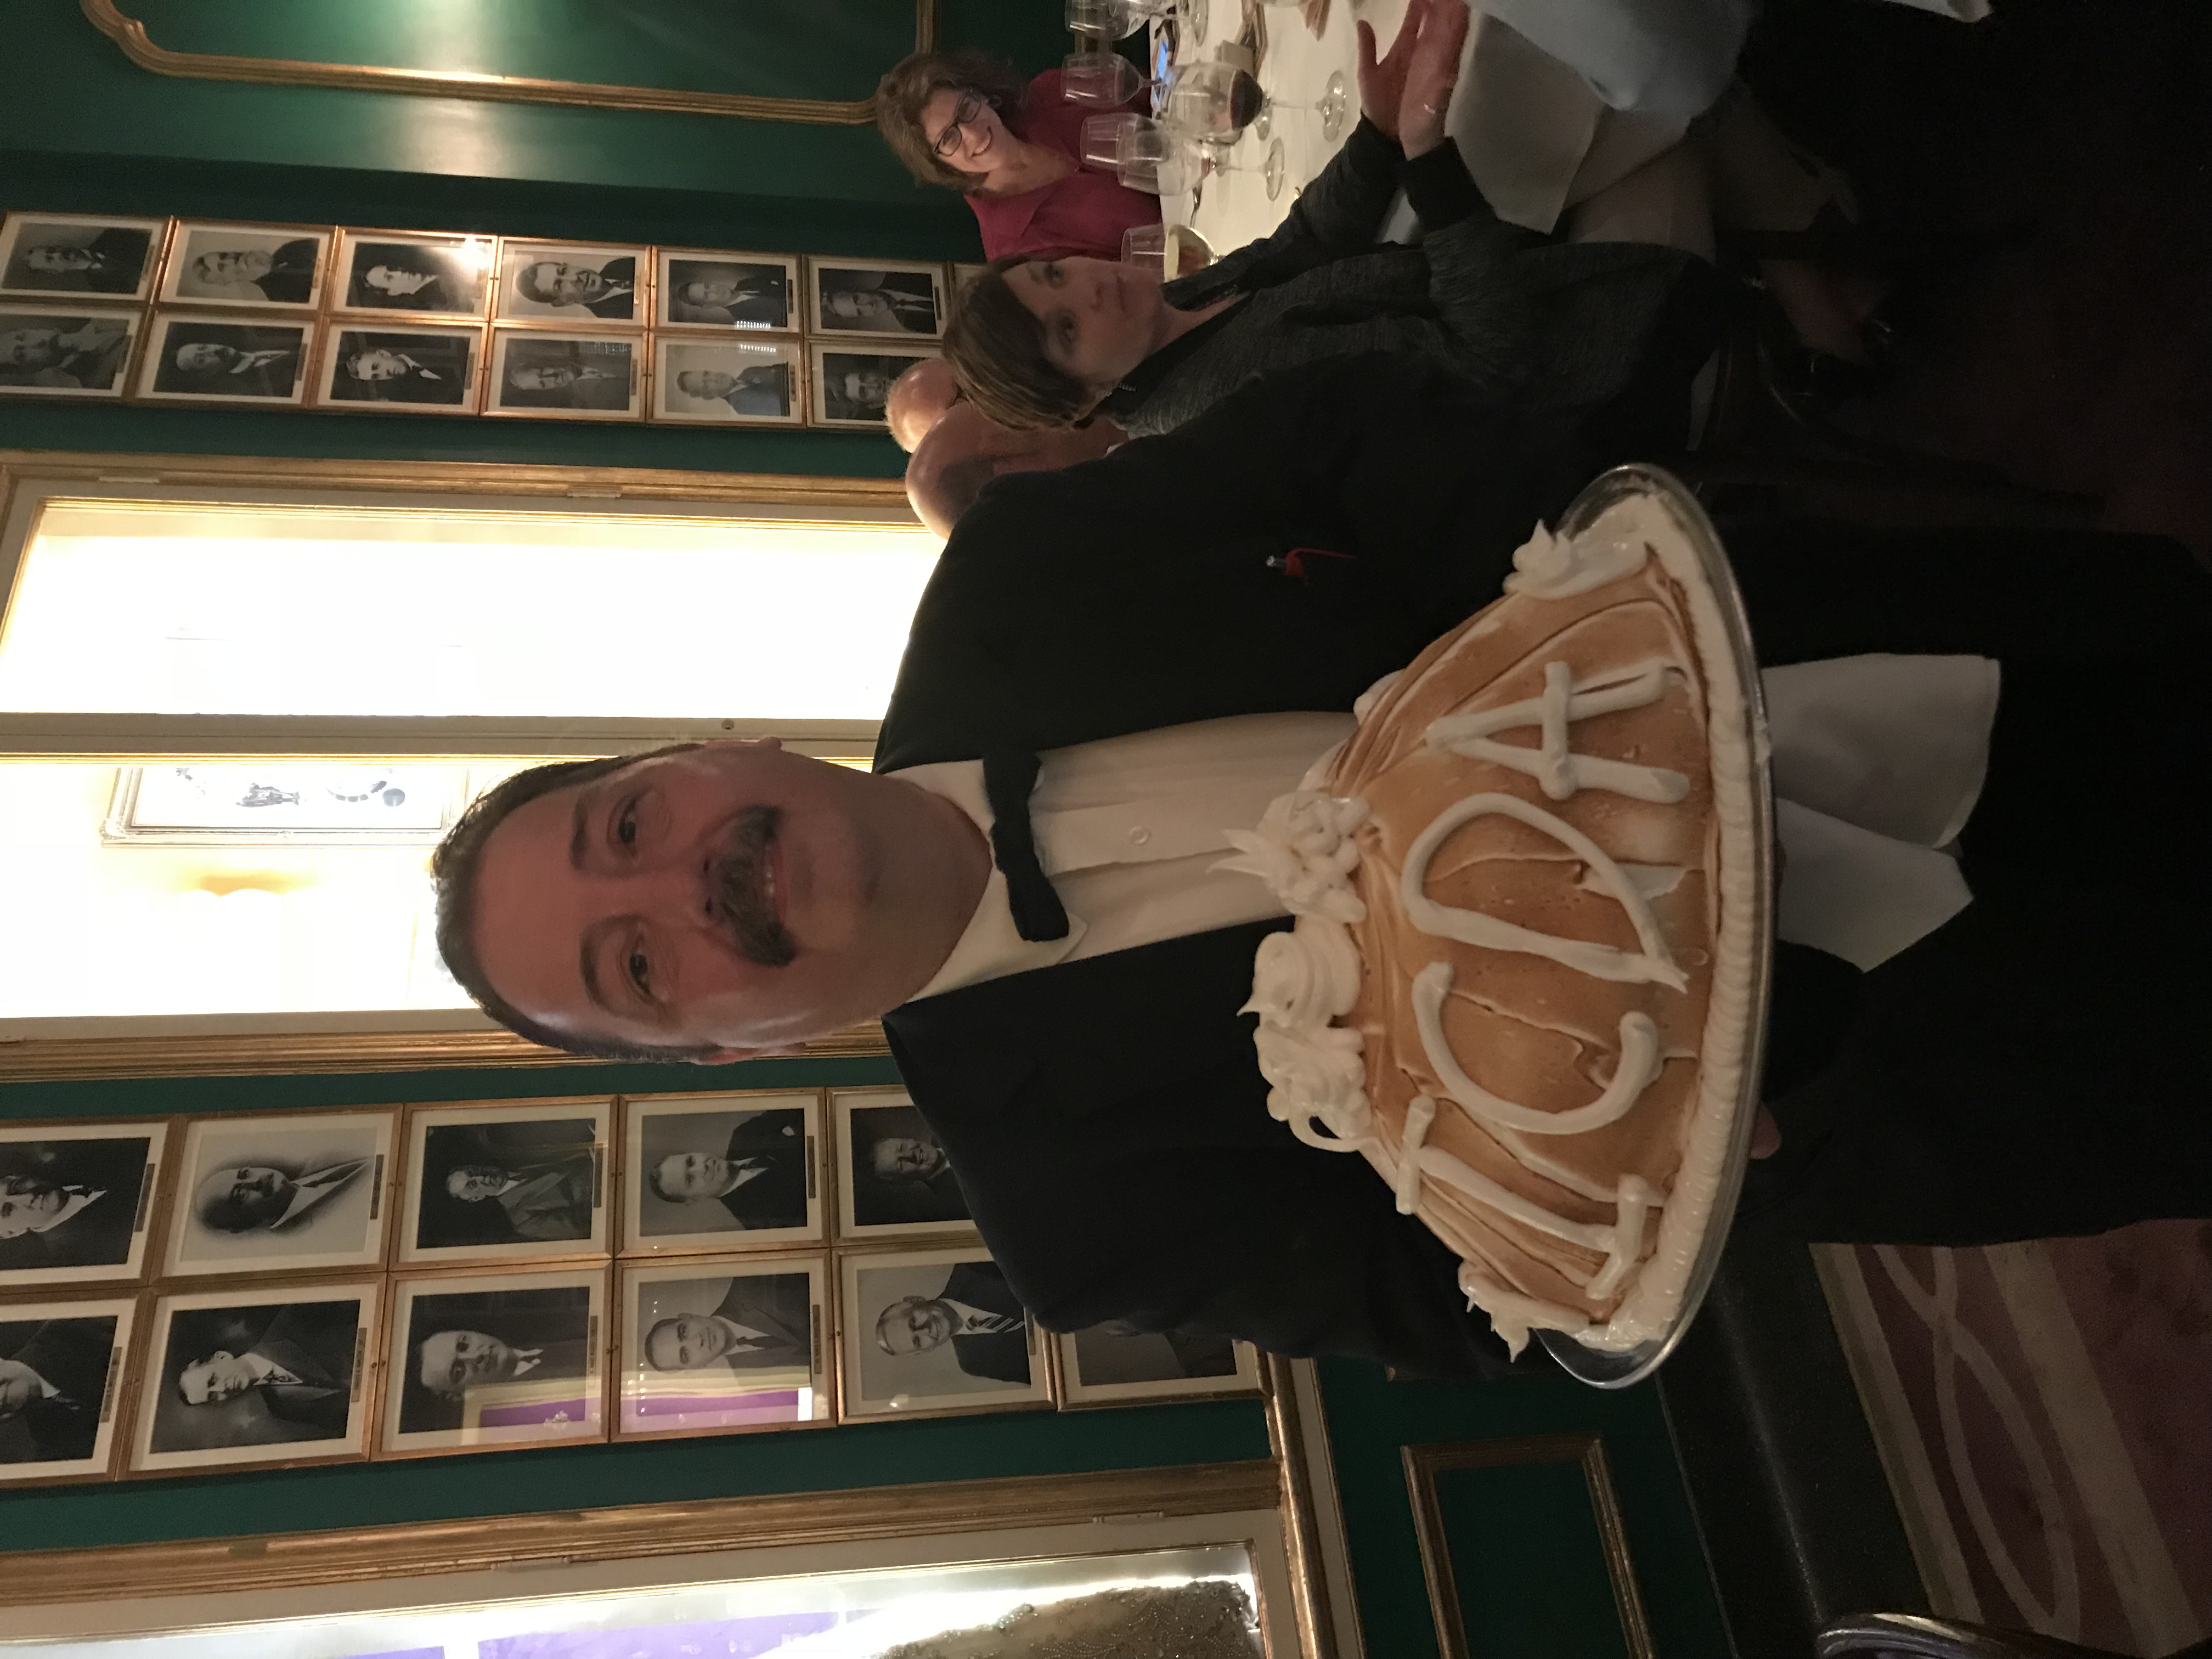 ICDA Cake in New Orleans